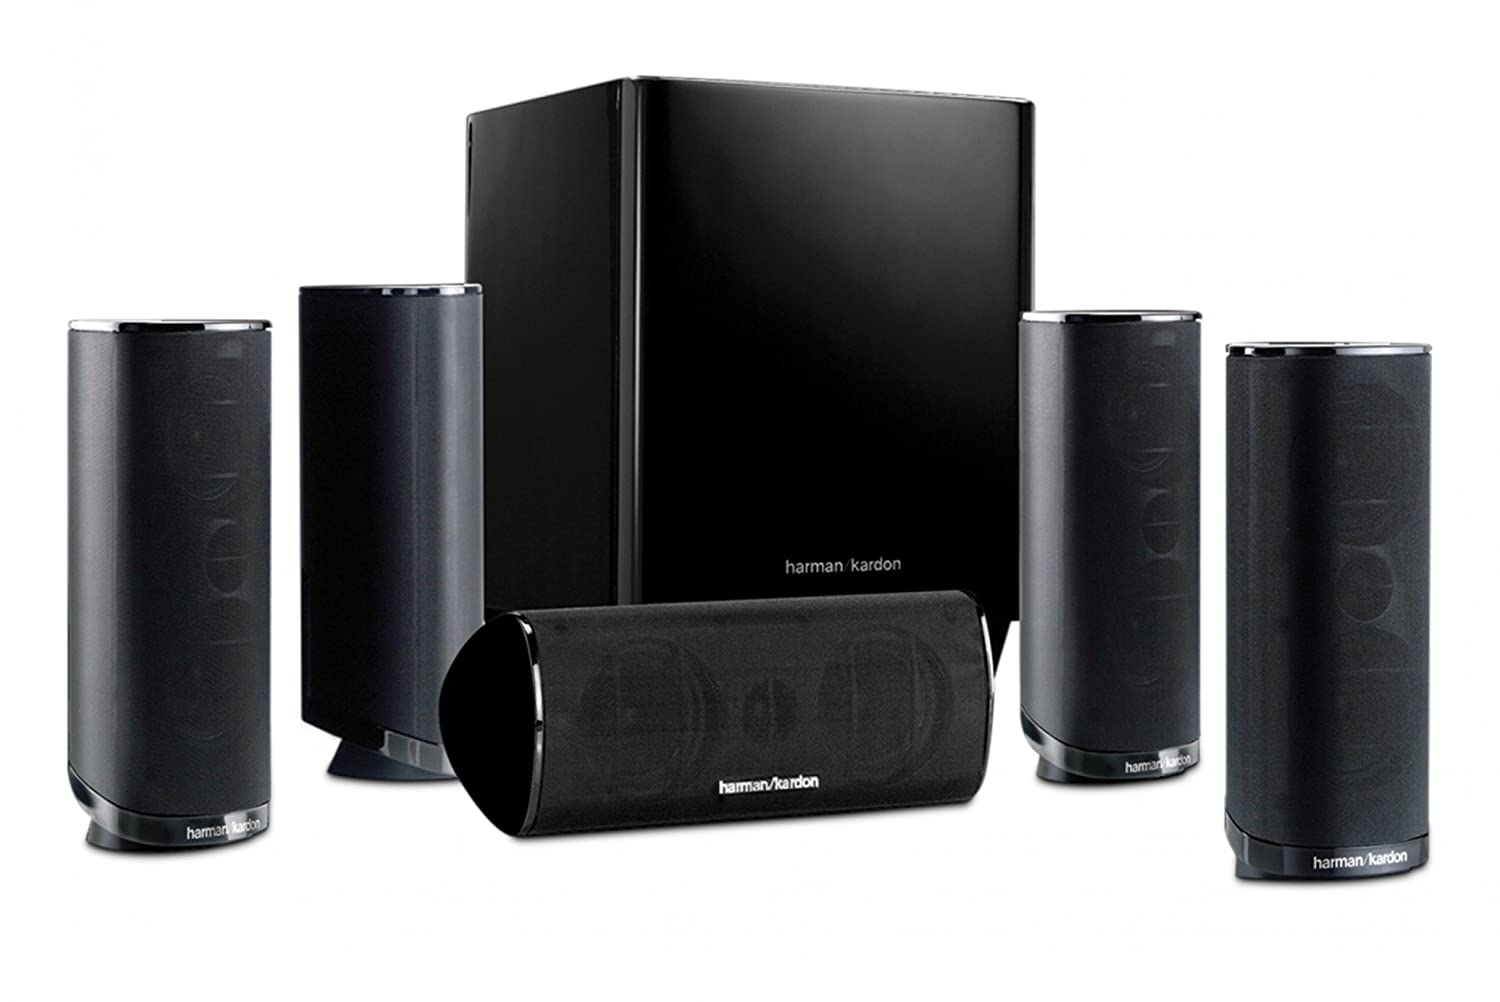 Amazon.com: Harman Kardon HKTS 16BQ 5.1 Channel Home Theater Speaker ...